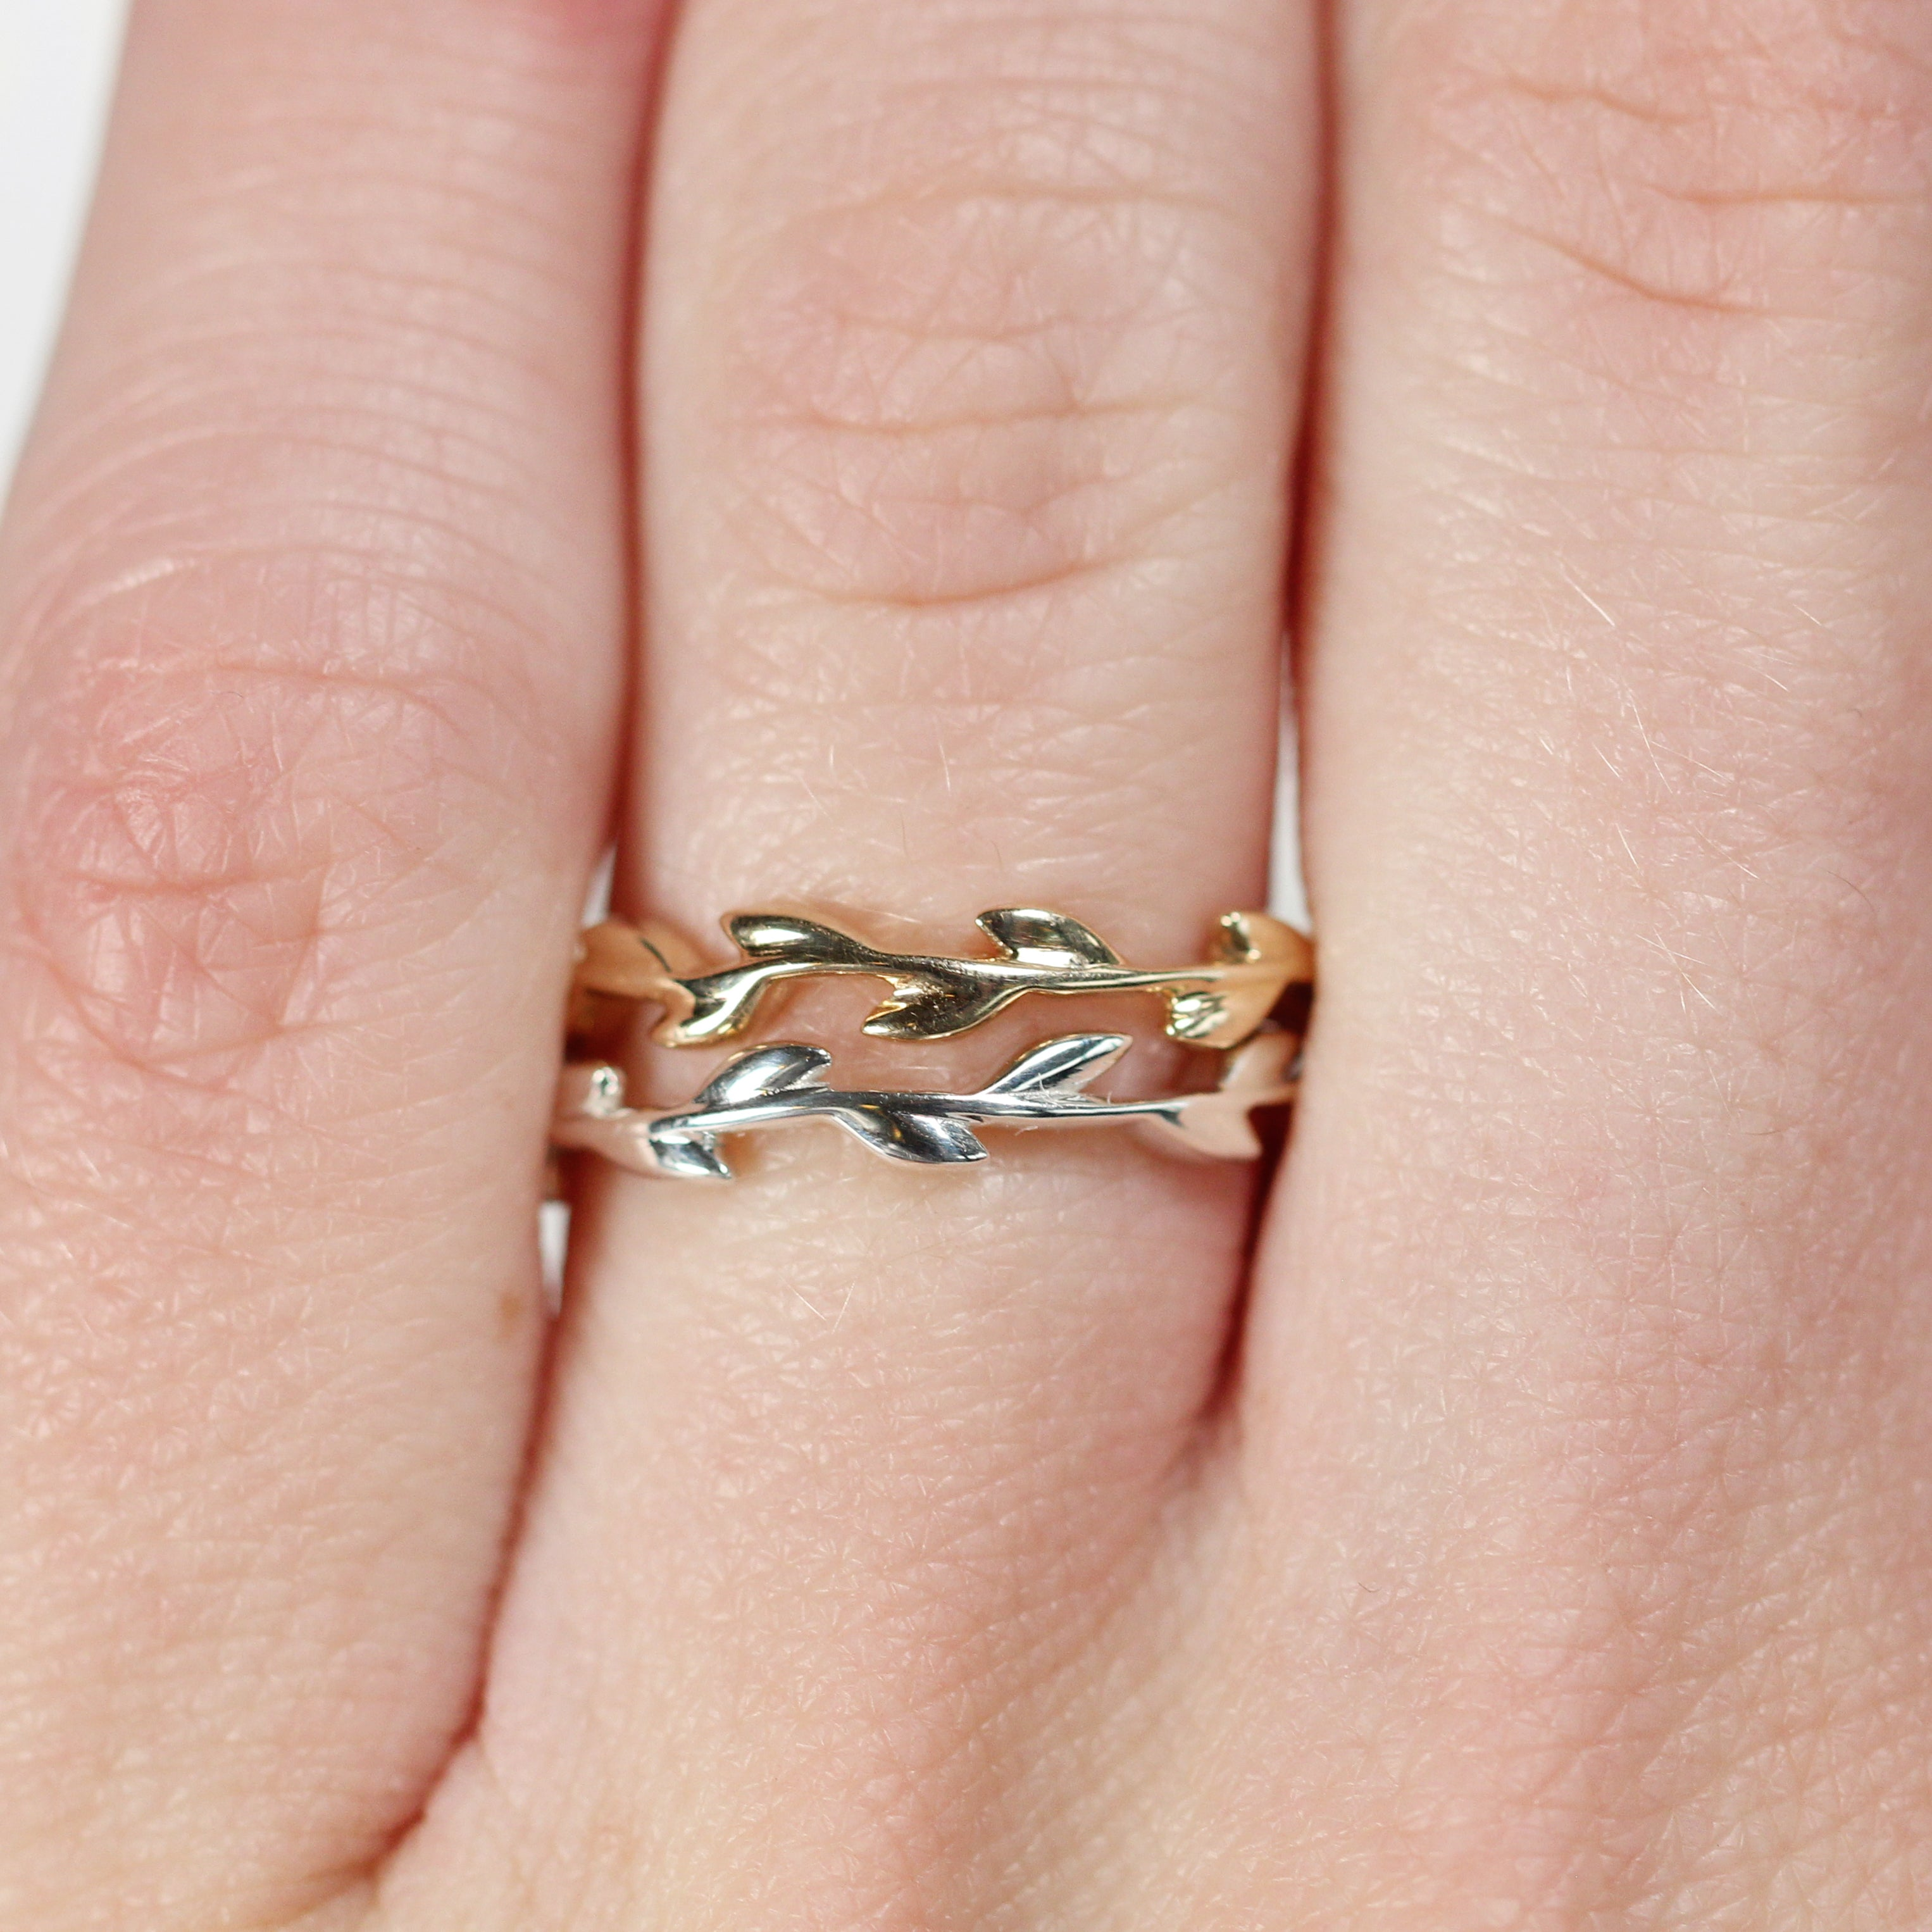 Foliage - Wedding Stacking Band in Your Choice of 14K Gold - Salt & Pepper Celestial Diamond Engagement Rings and Wedding Bands  by Midwinter Co.